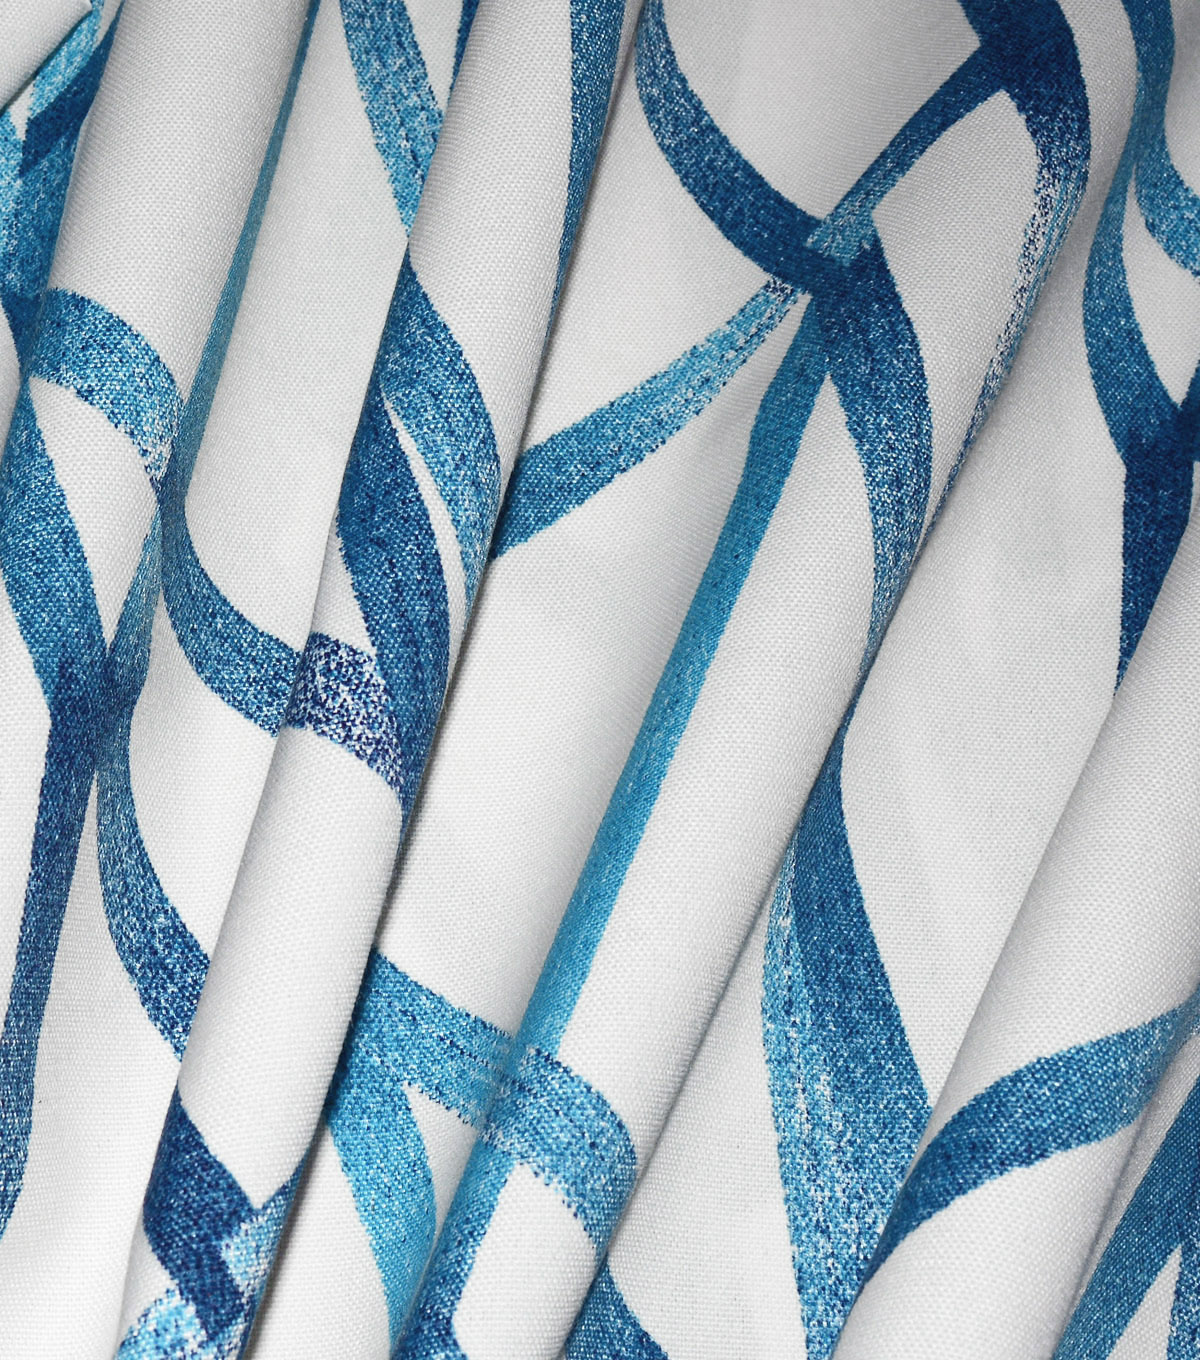 Genevieve Gorder Outdoor Fabric 54\u0027\u0027-Sail Intersections